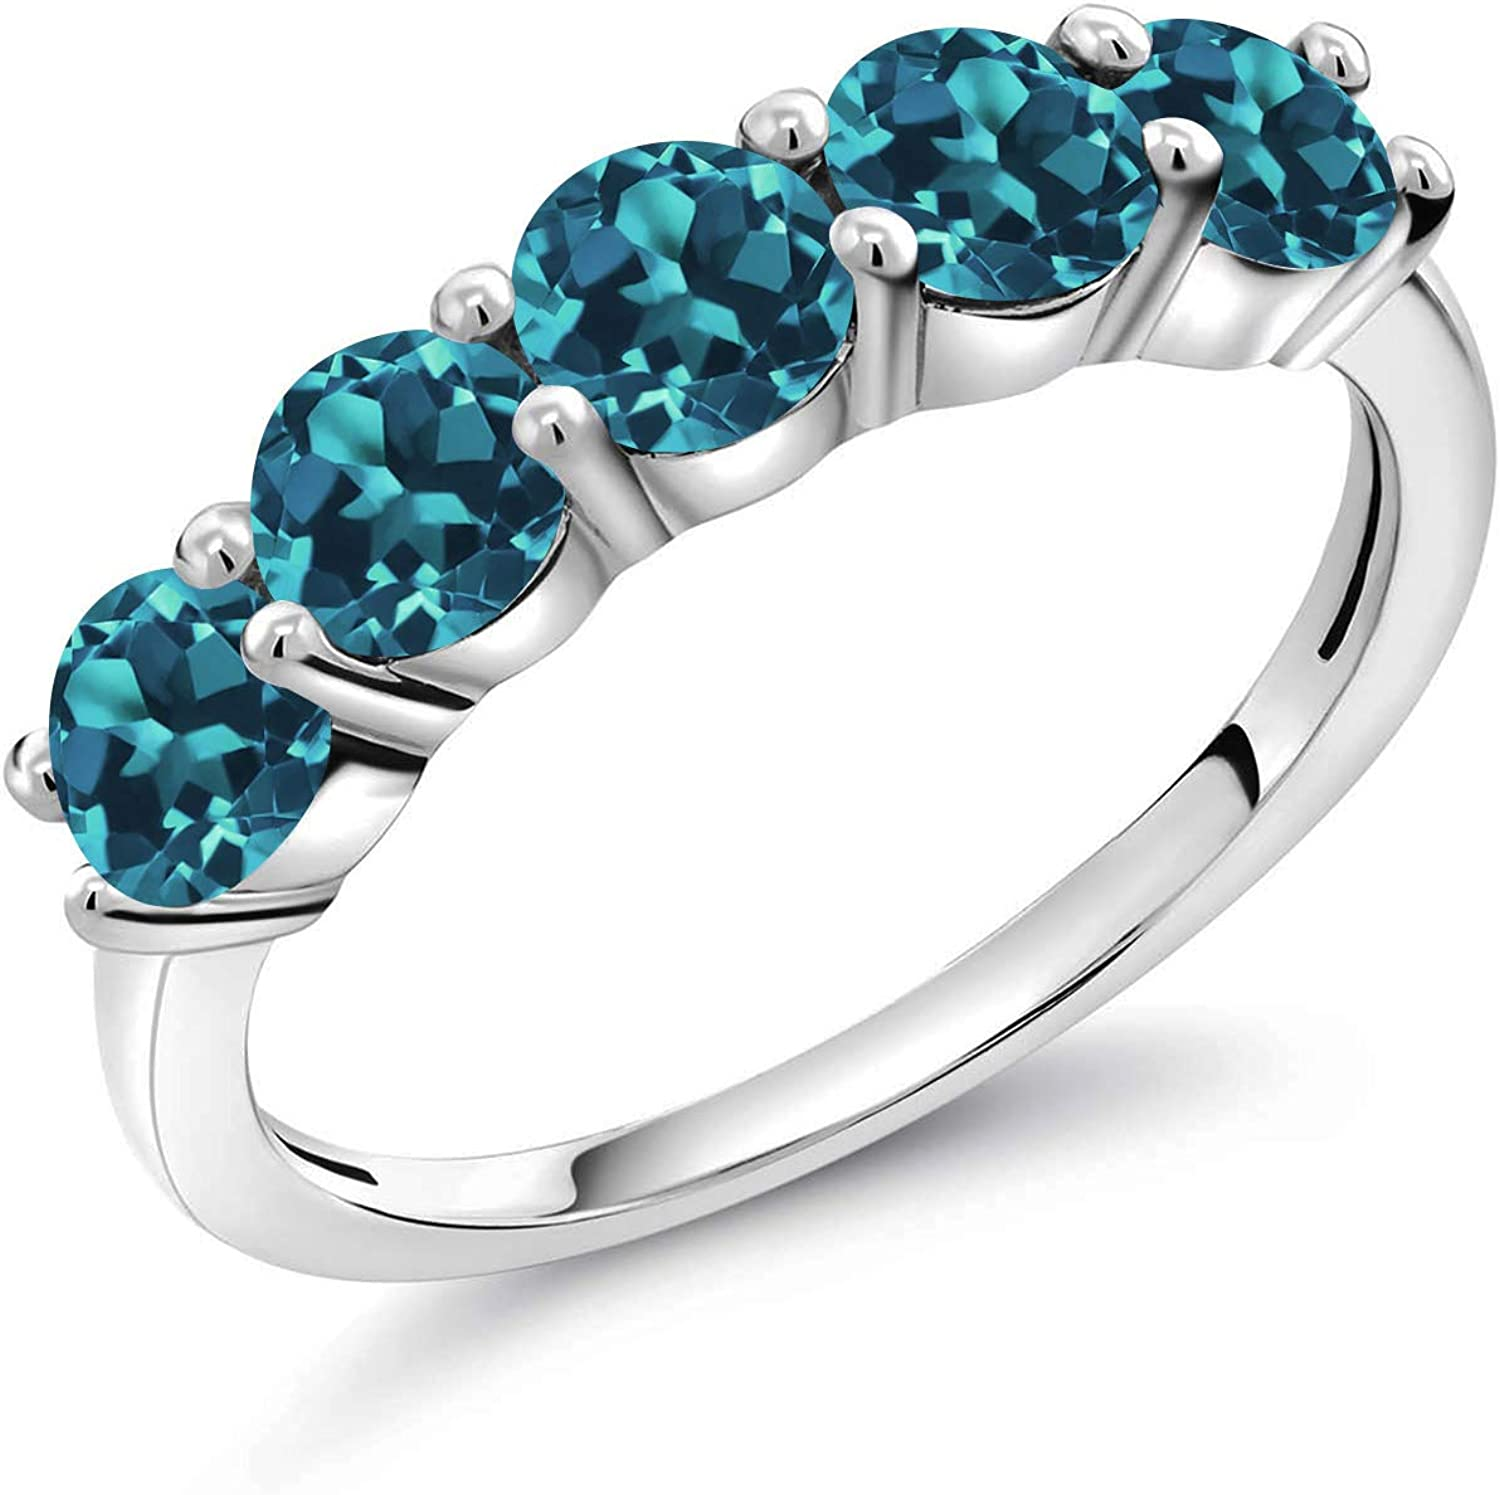 Details about  /Full Eternity 0.50 Cts London Blue Topaz 925 Sterling Silver Stacking Bridal Rin